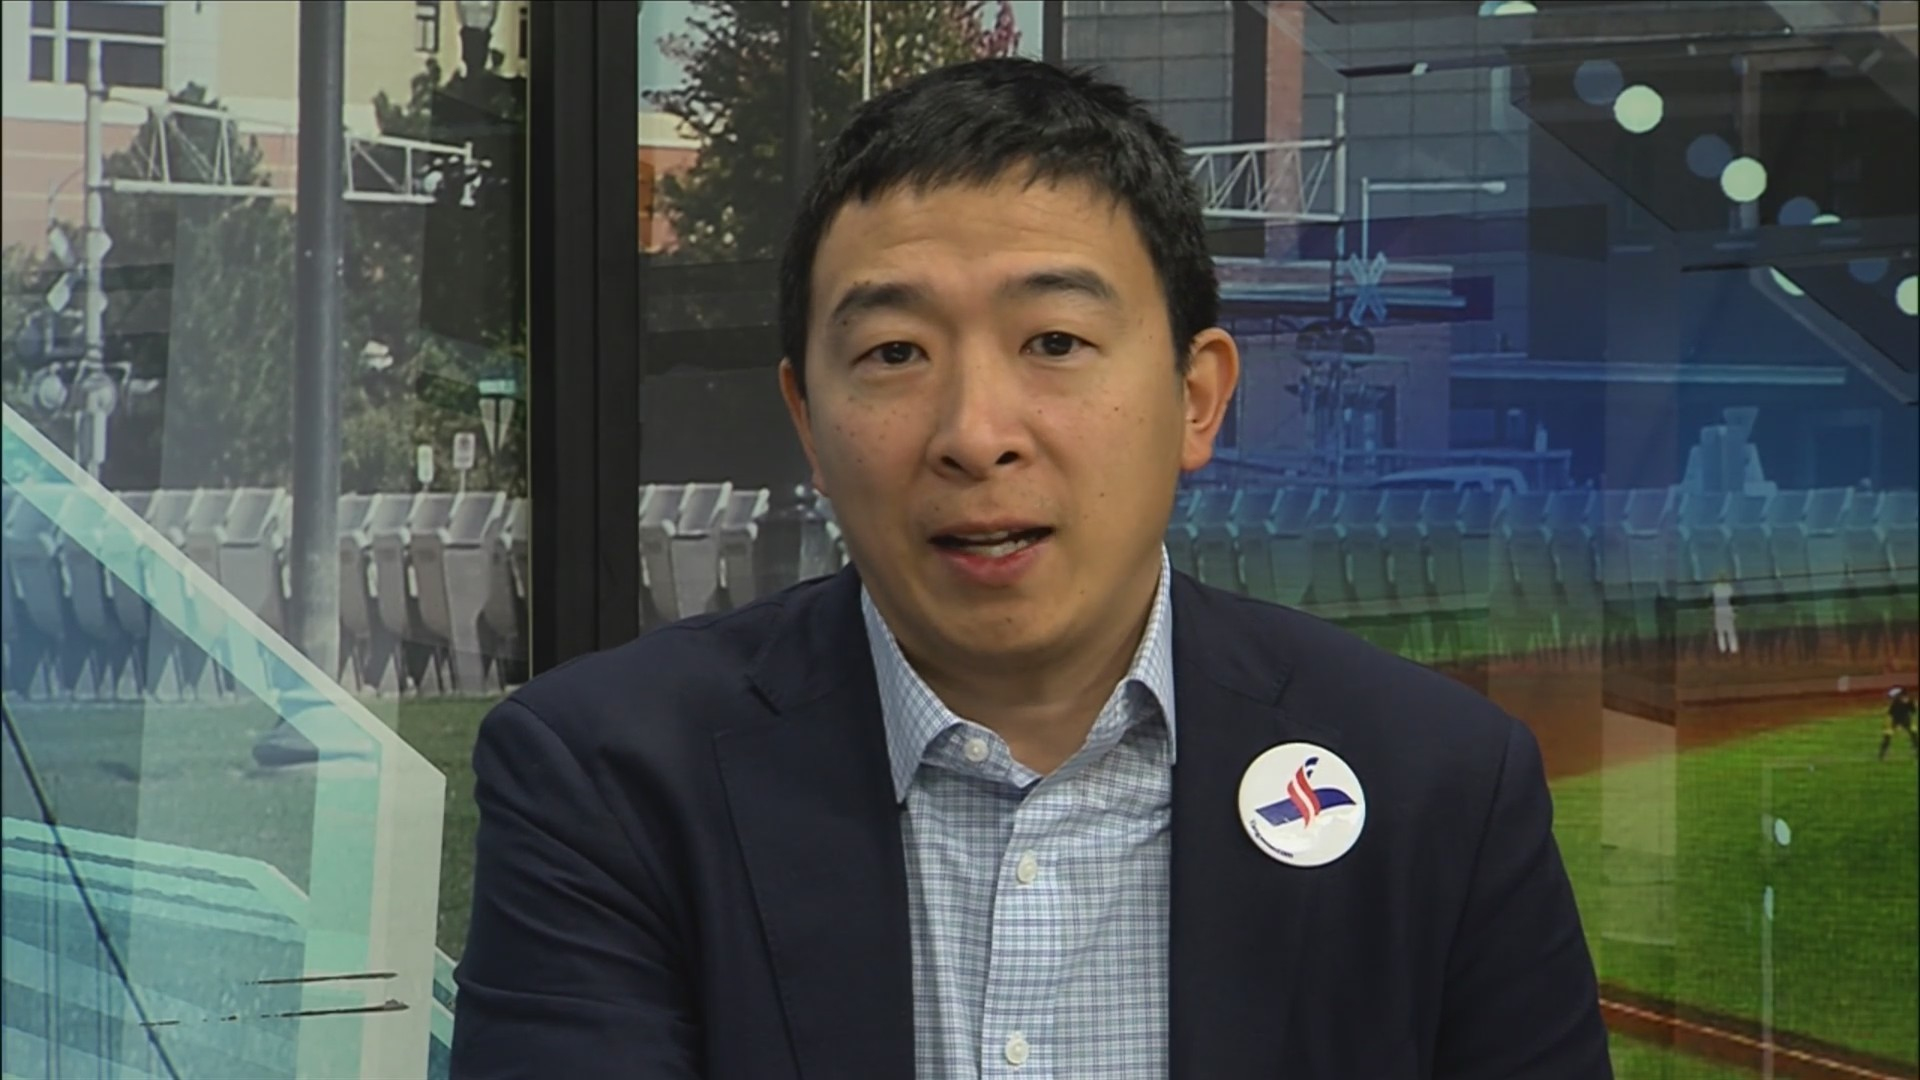 4TR WEB EXTRA Democrat Andrew Yang wants you to own your personal data and compensated for it